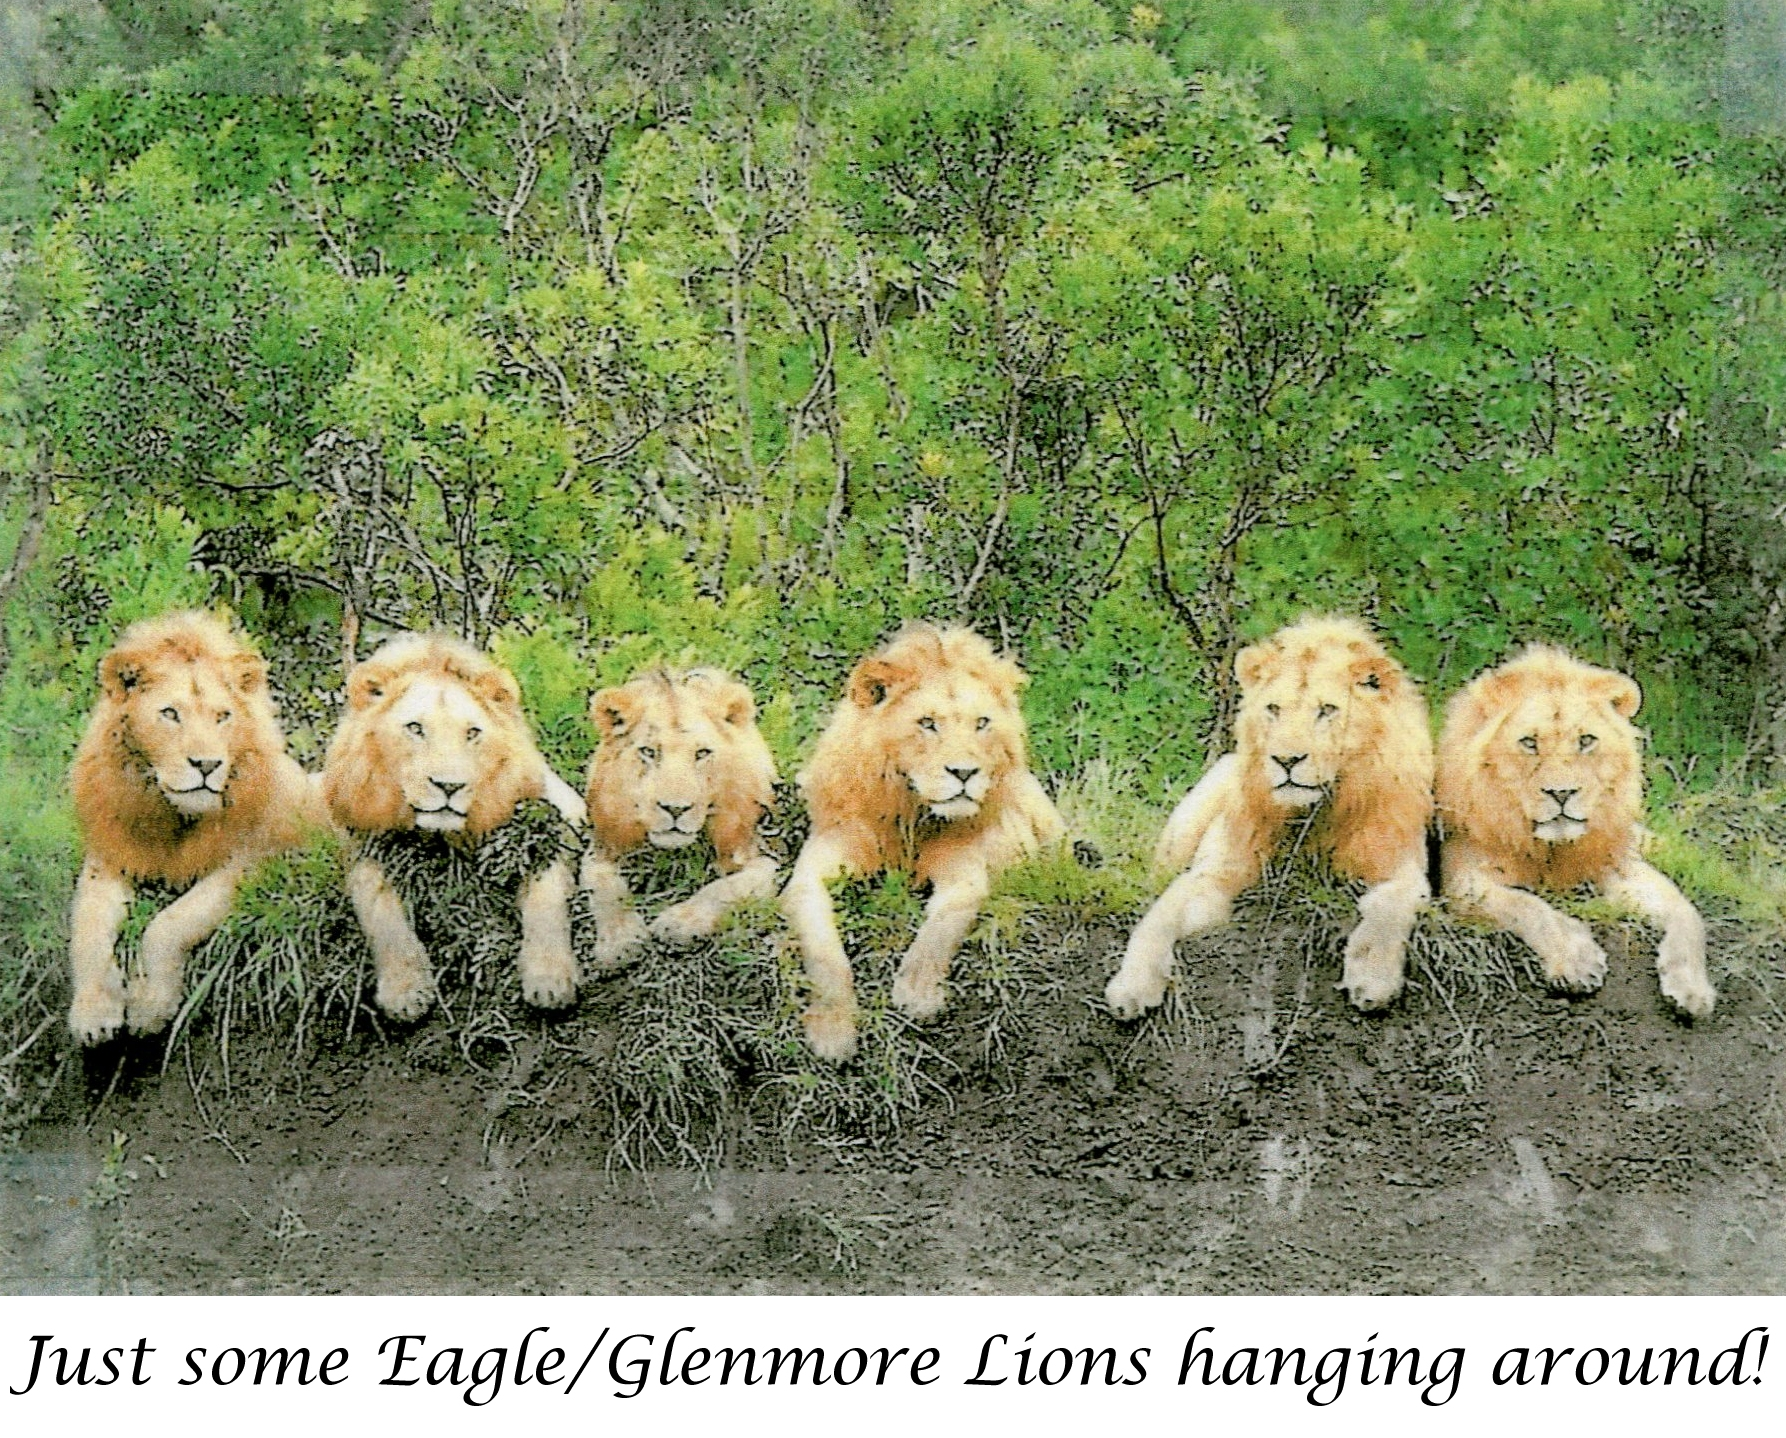 Just some Eagle/Glenmore Lions hanging around!